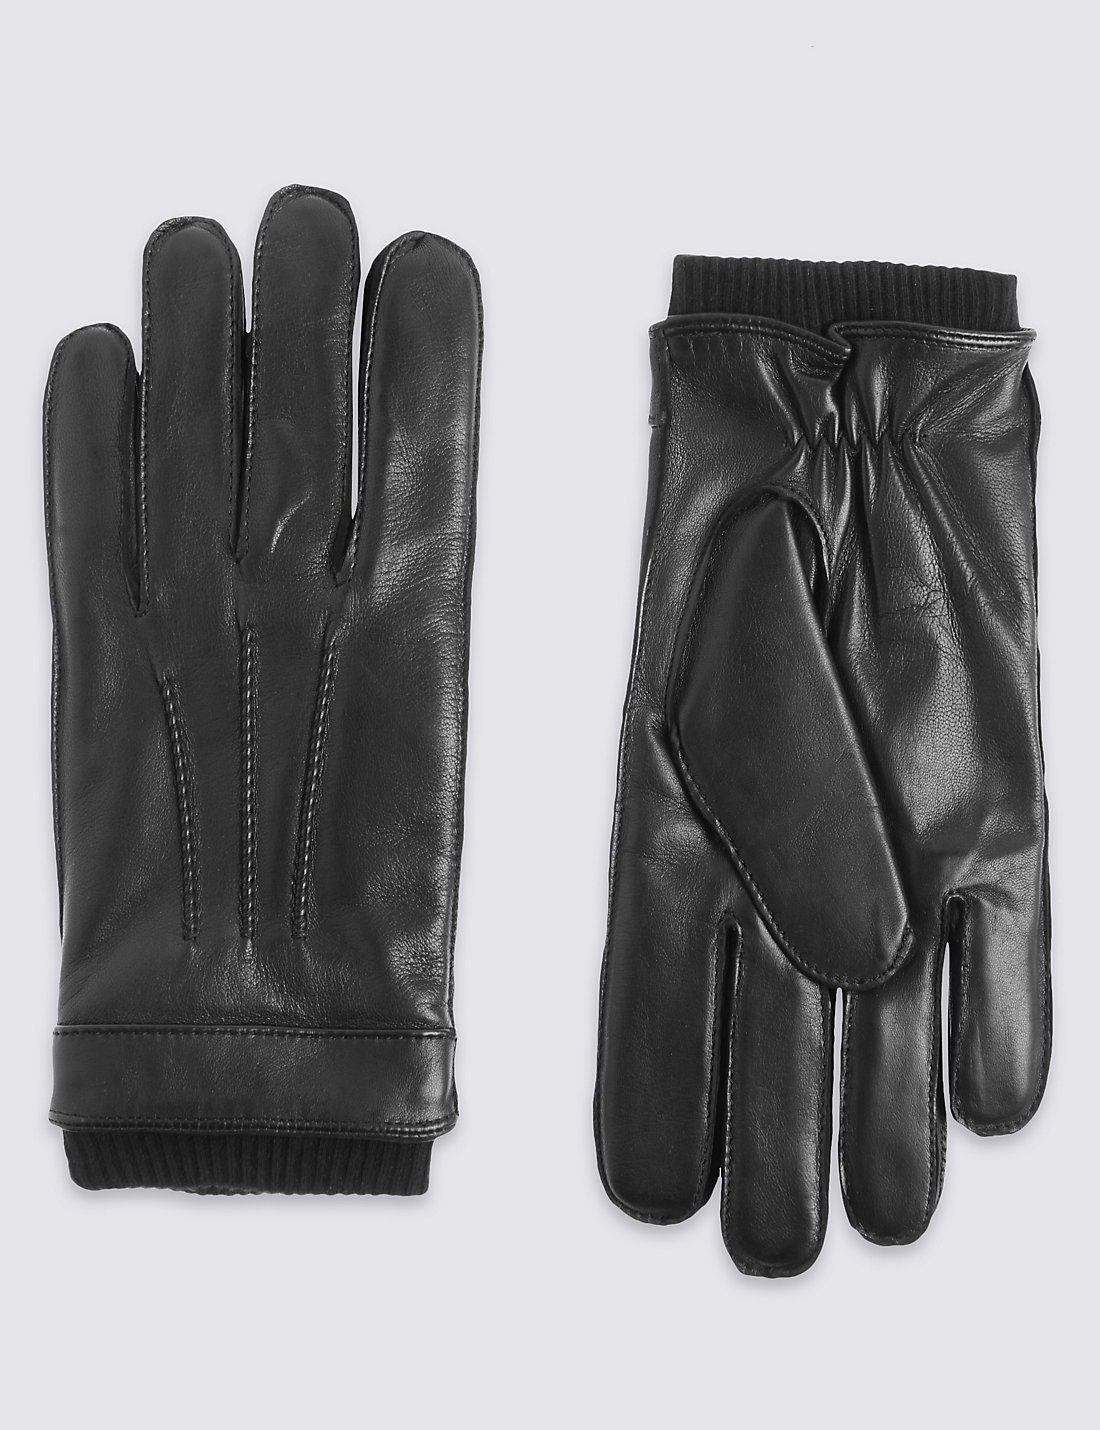 Mens gloves sale uk - Leather Thinsulate Trade Gloves With Knitted Cuff